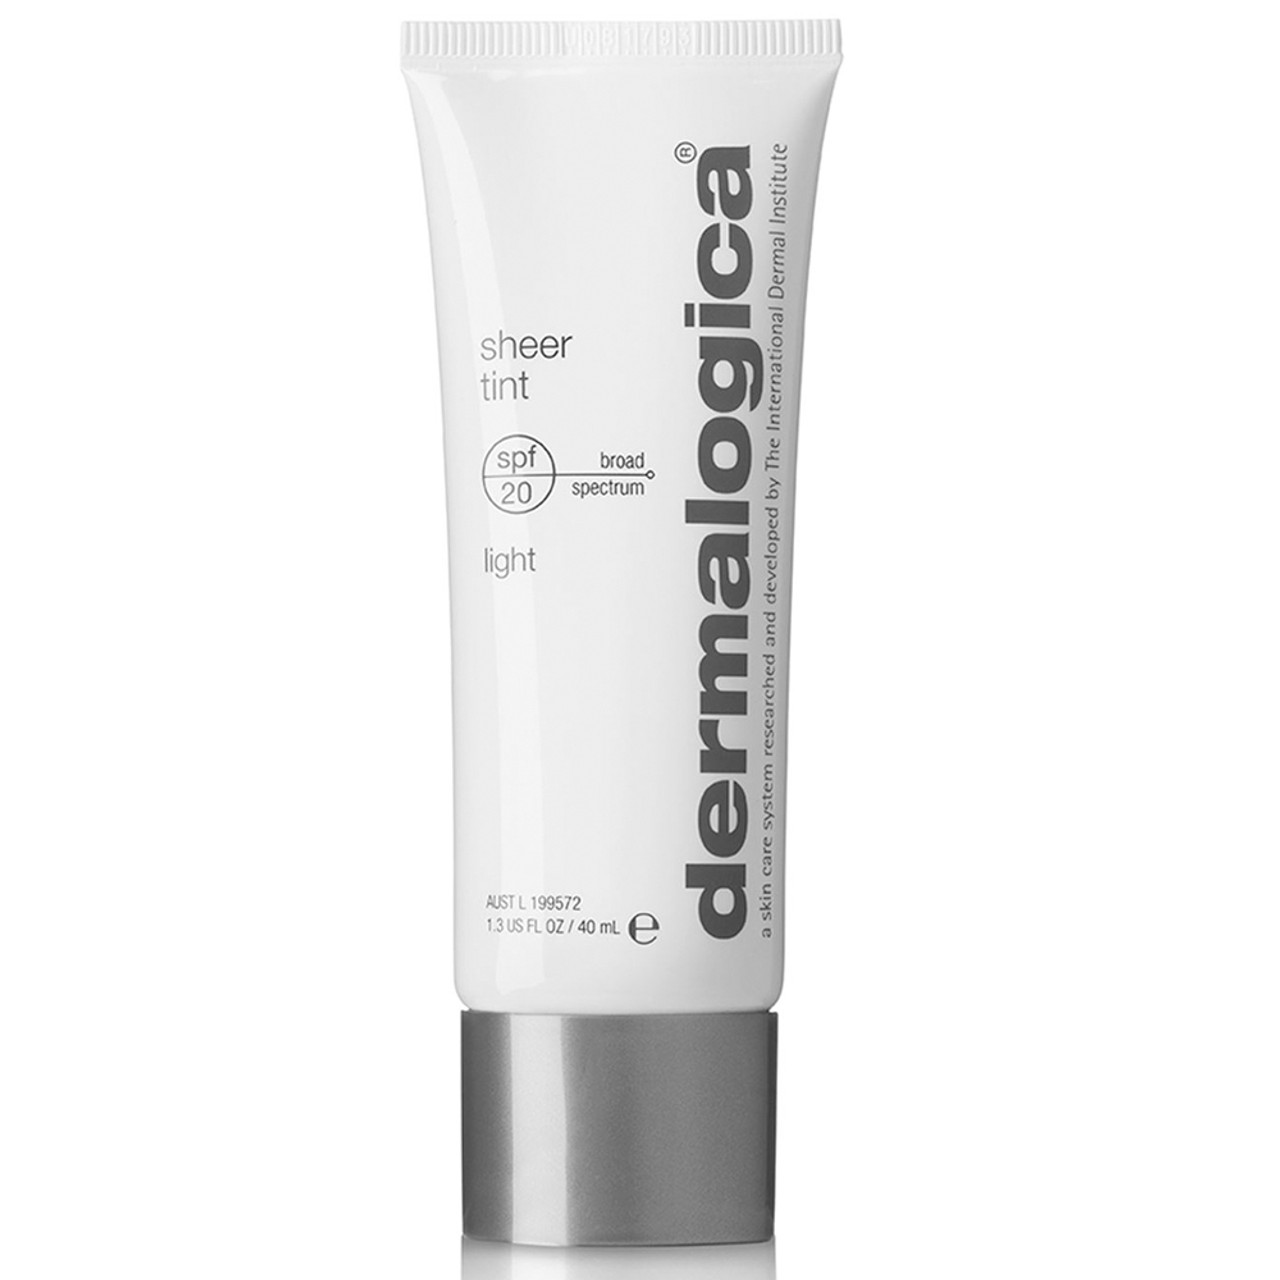 Dermalogica Sheer Tint Spf 20 Reviews On Sale And Free